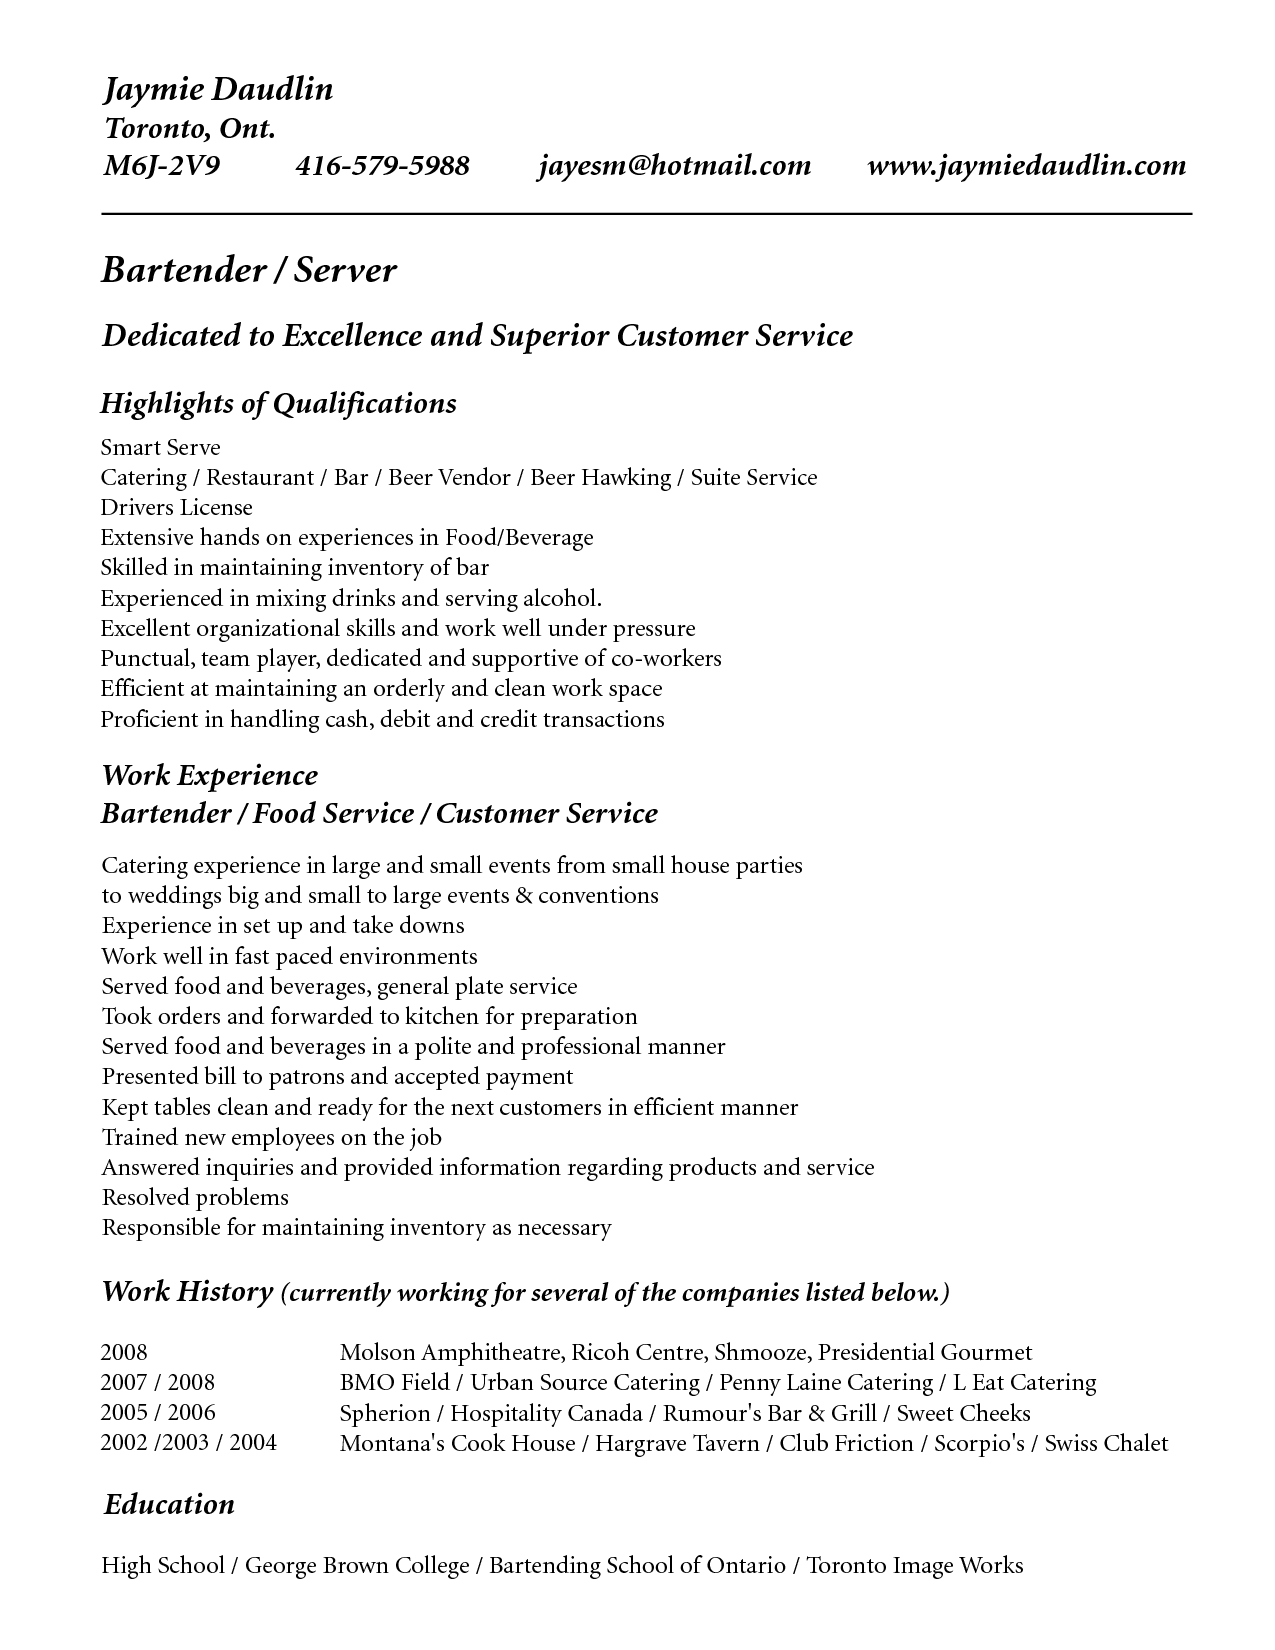 Server Resume Template Resume Template For Bartender No Experience  Httpwww